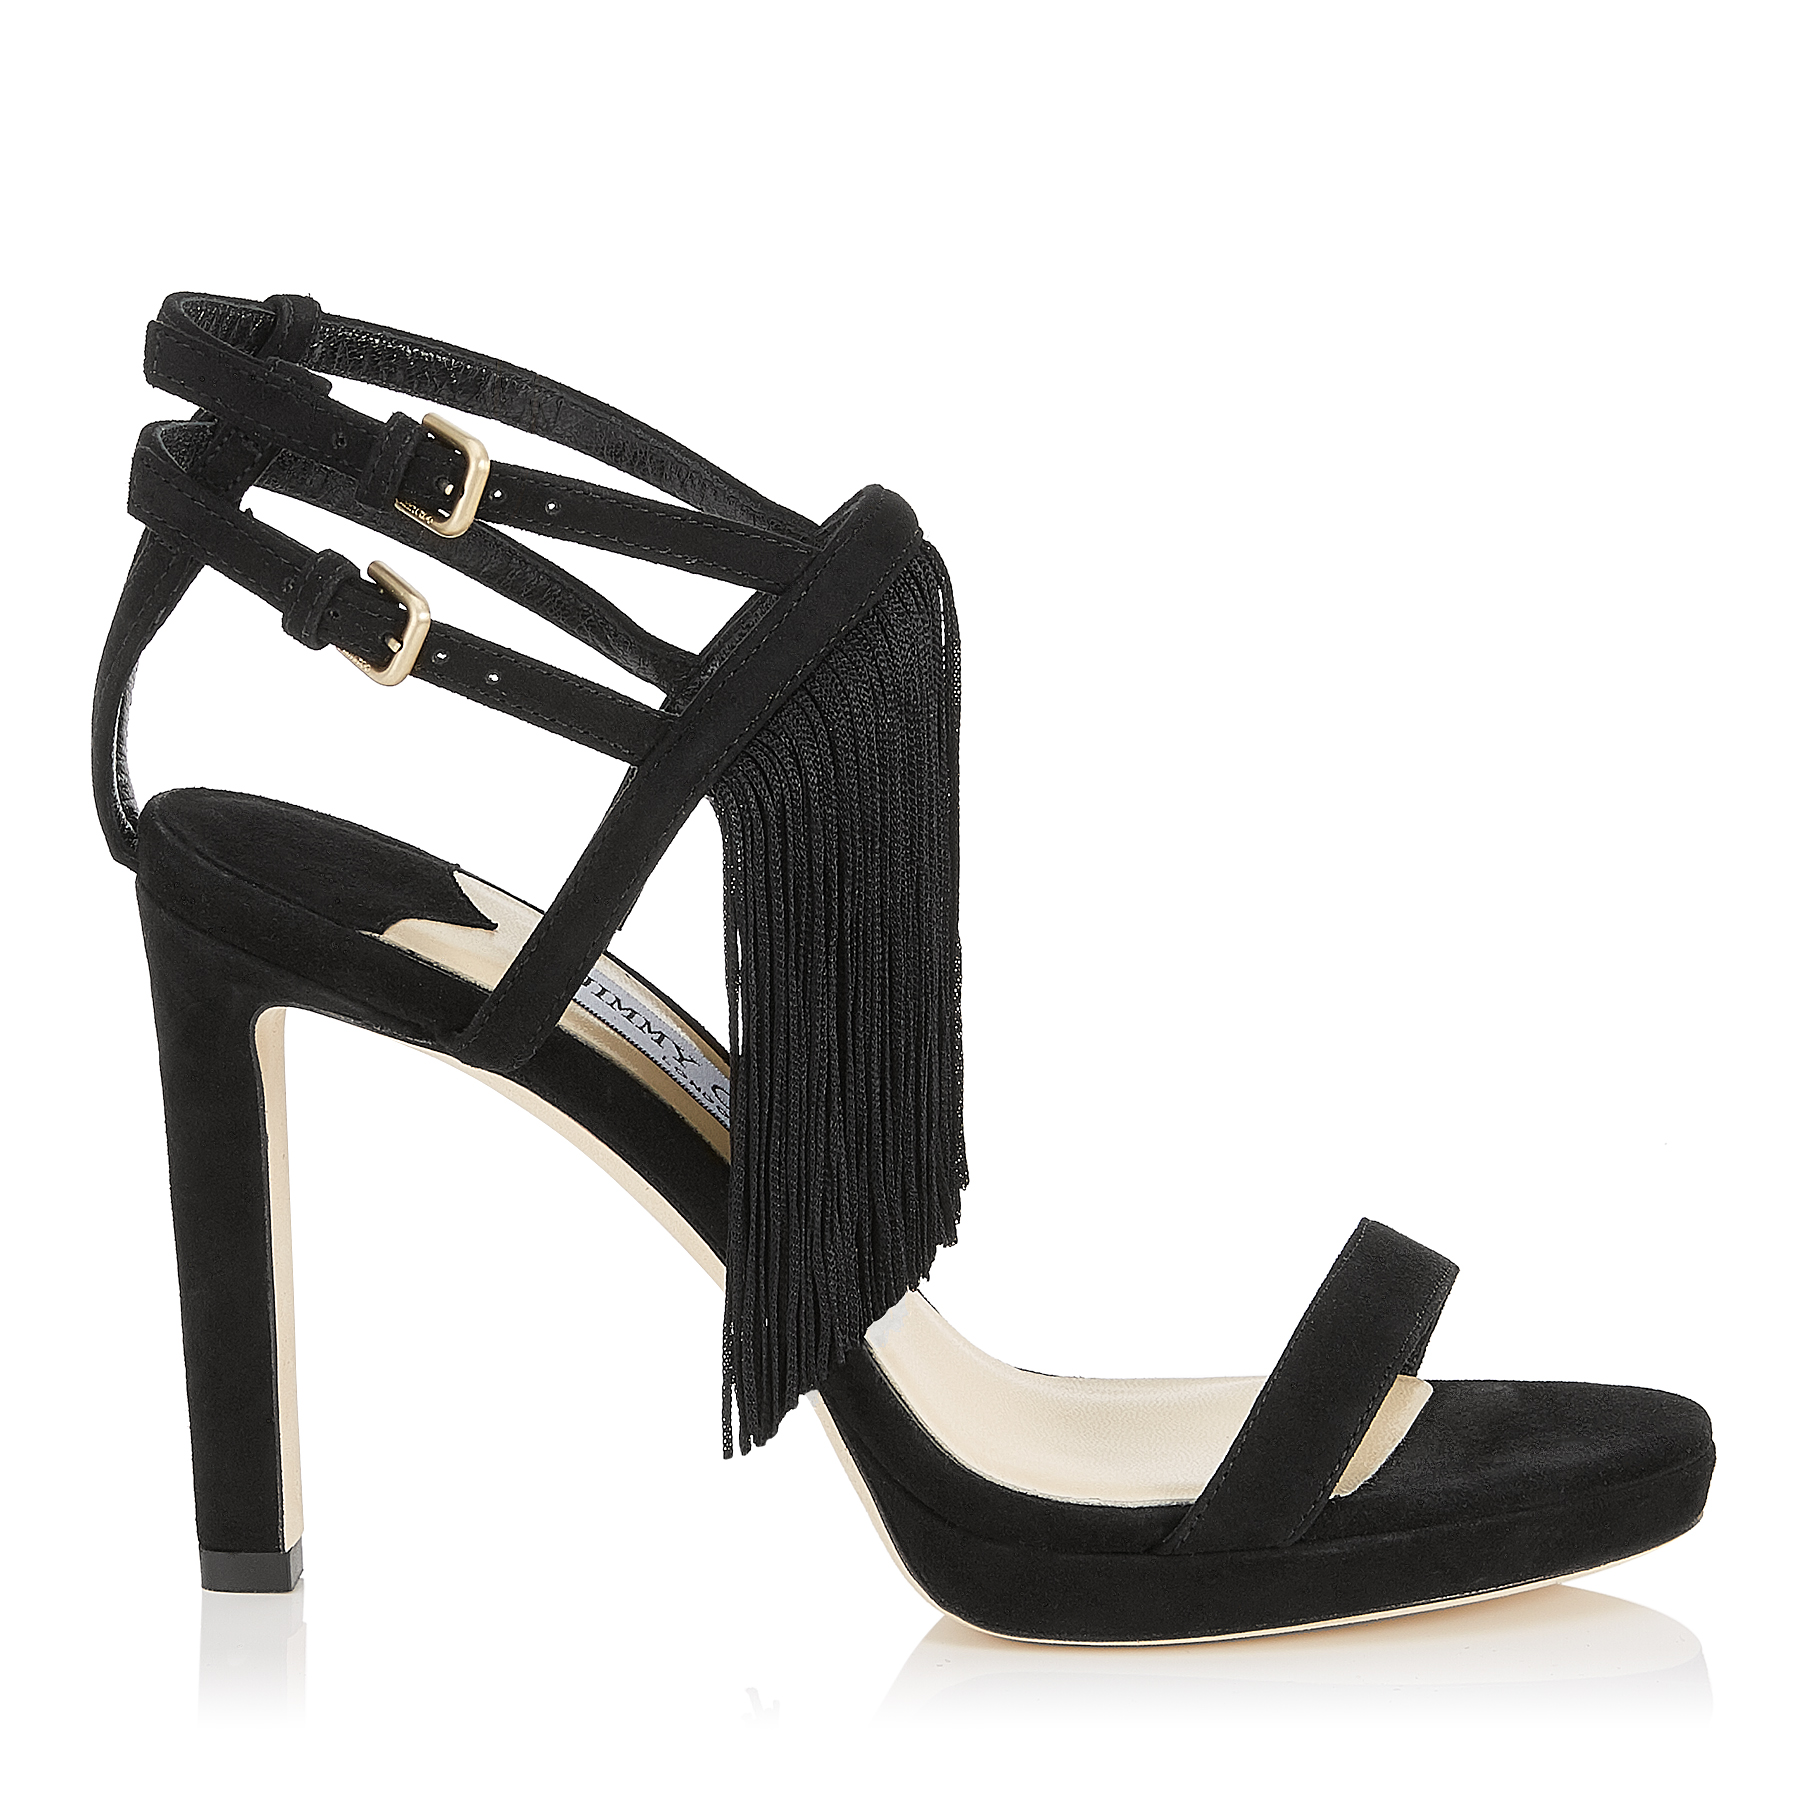 FARRAH 100 Black Suede Sandals with Fringe by Jimmy Choo